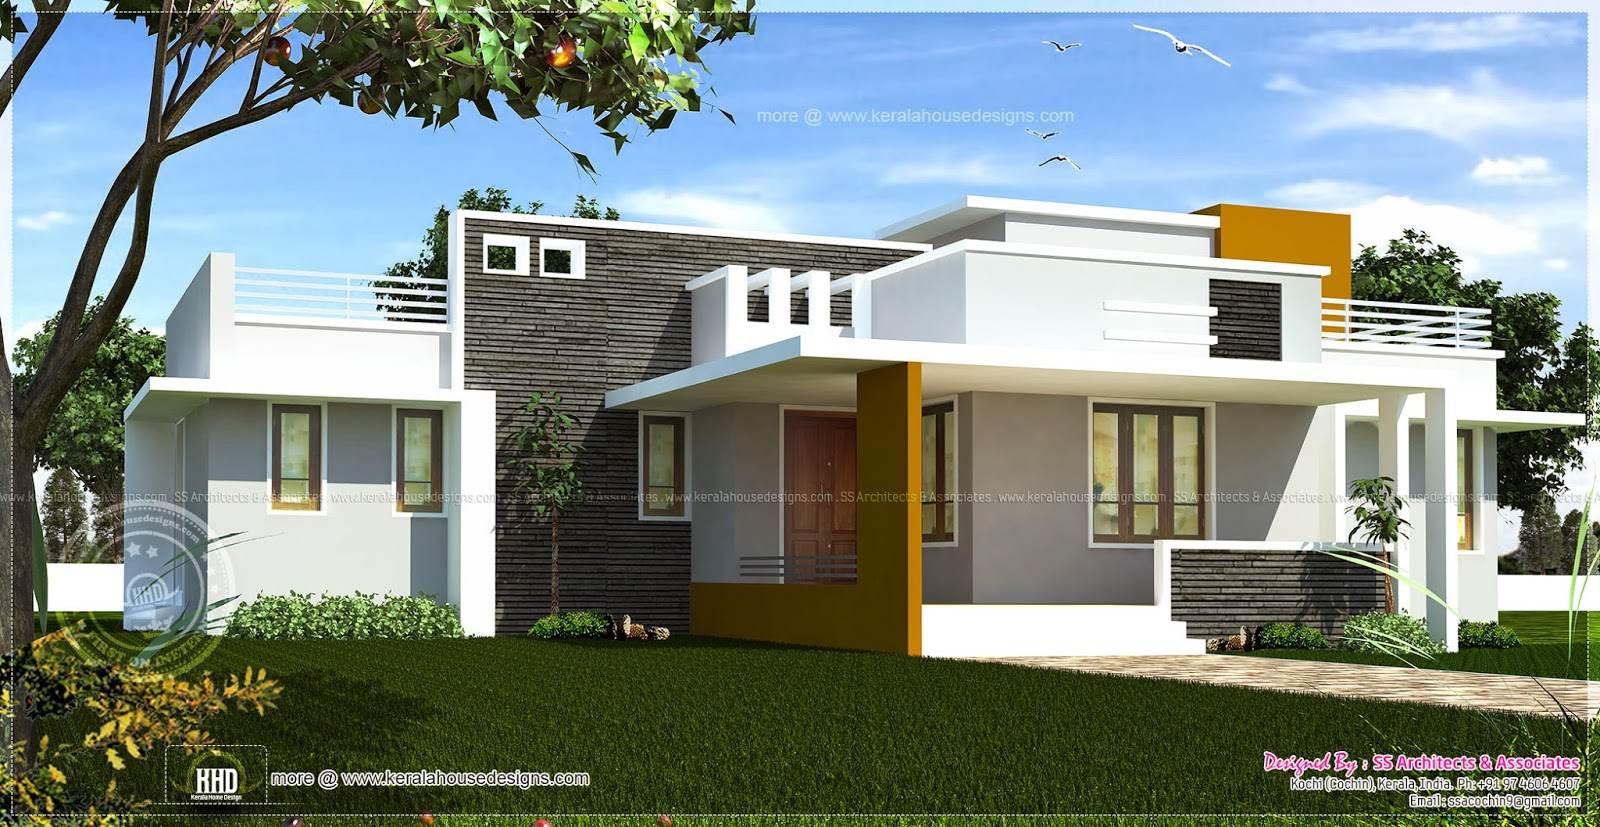 Single floor contemporary house design kerala home for Single floor house plans kerala style